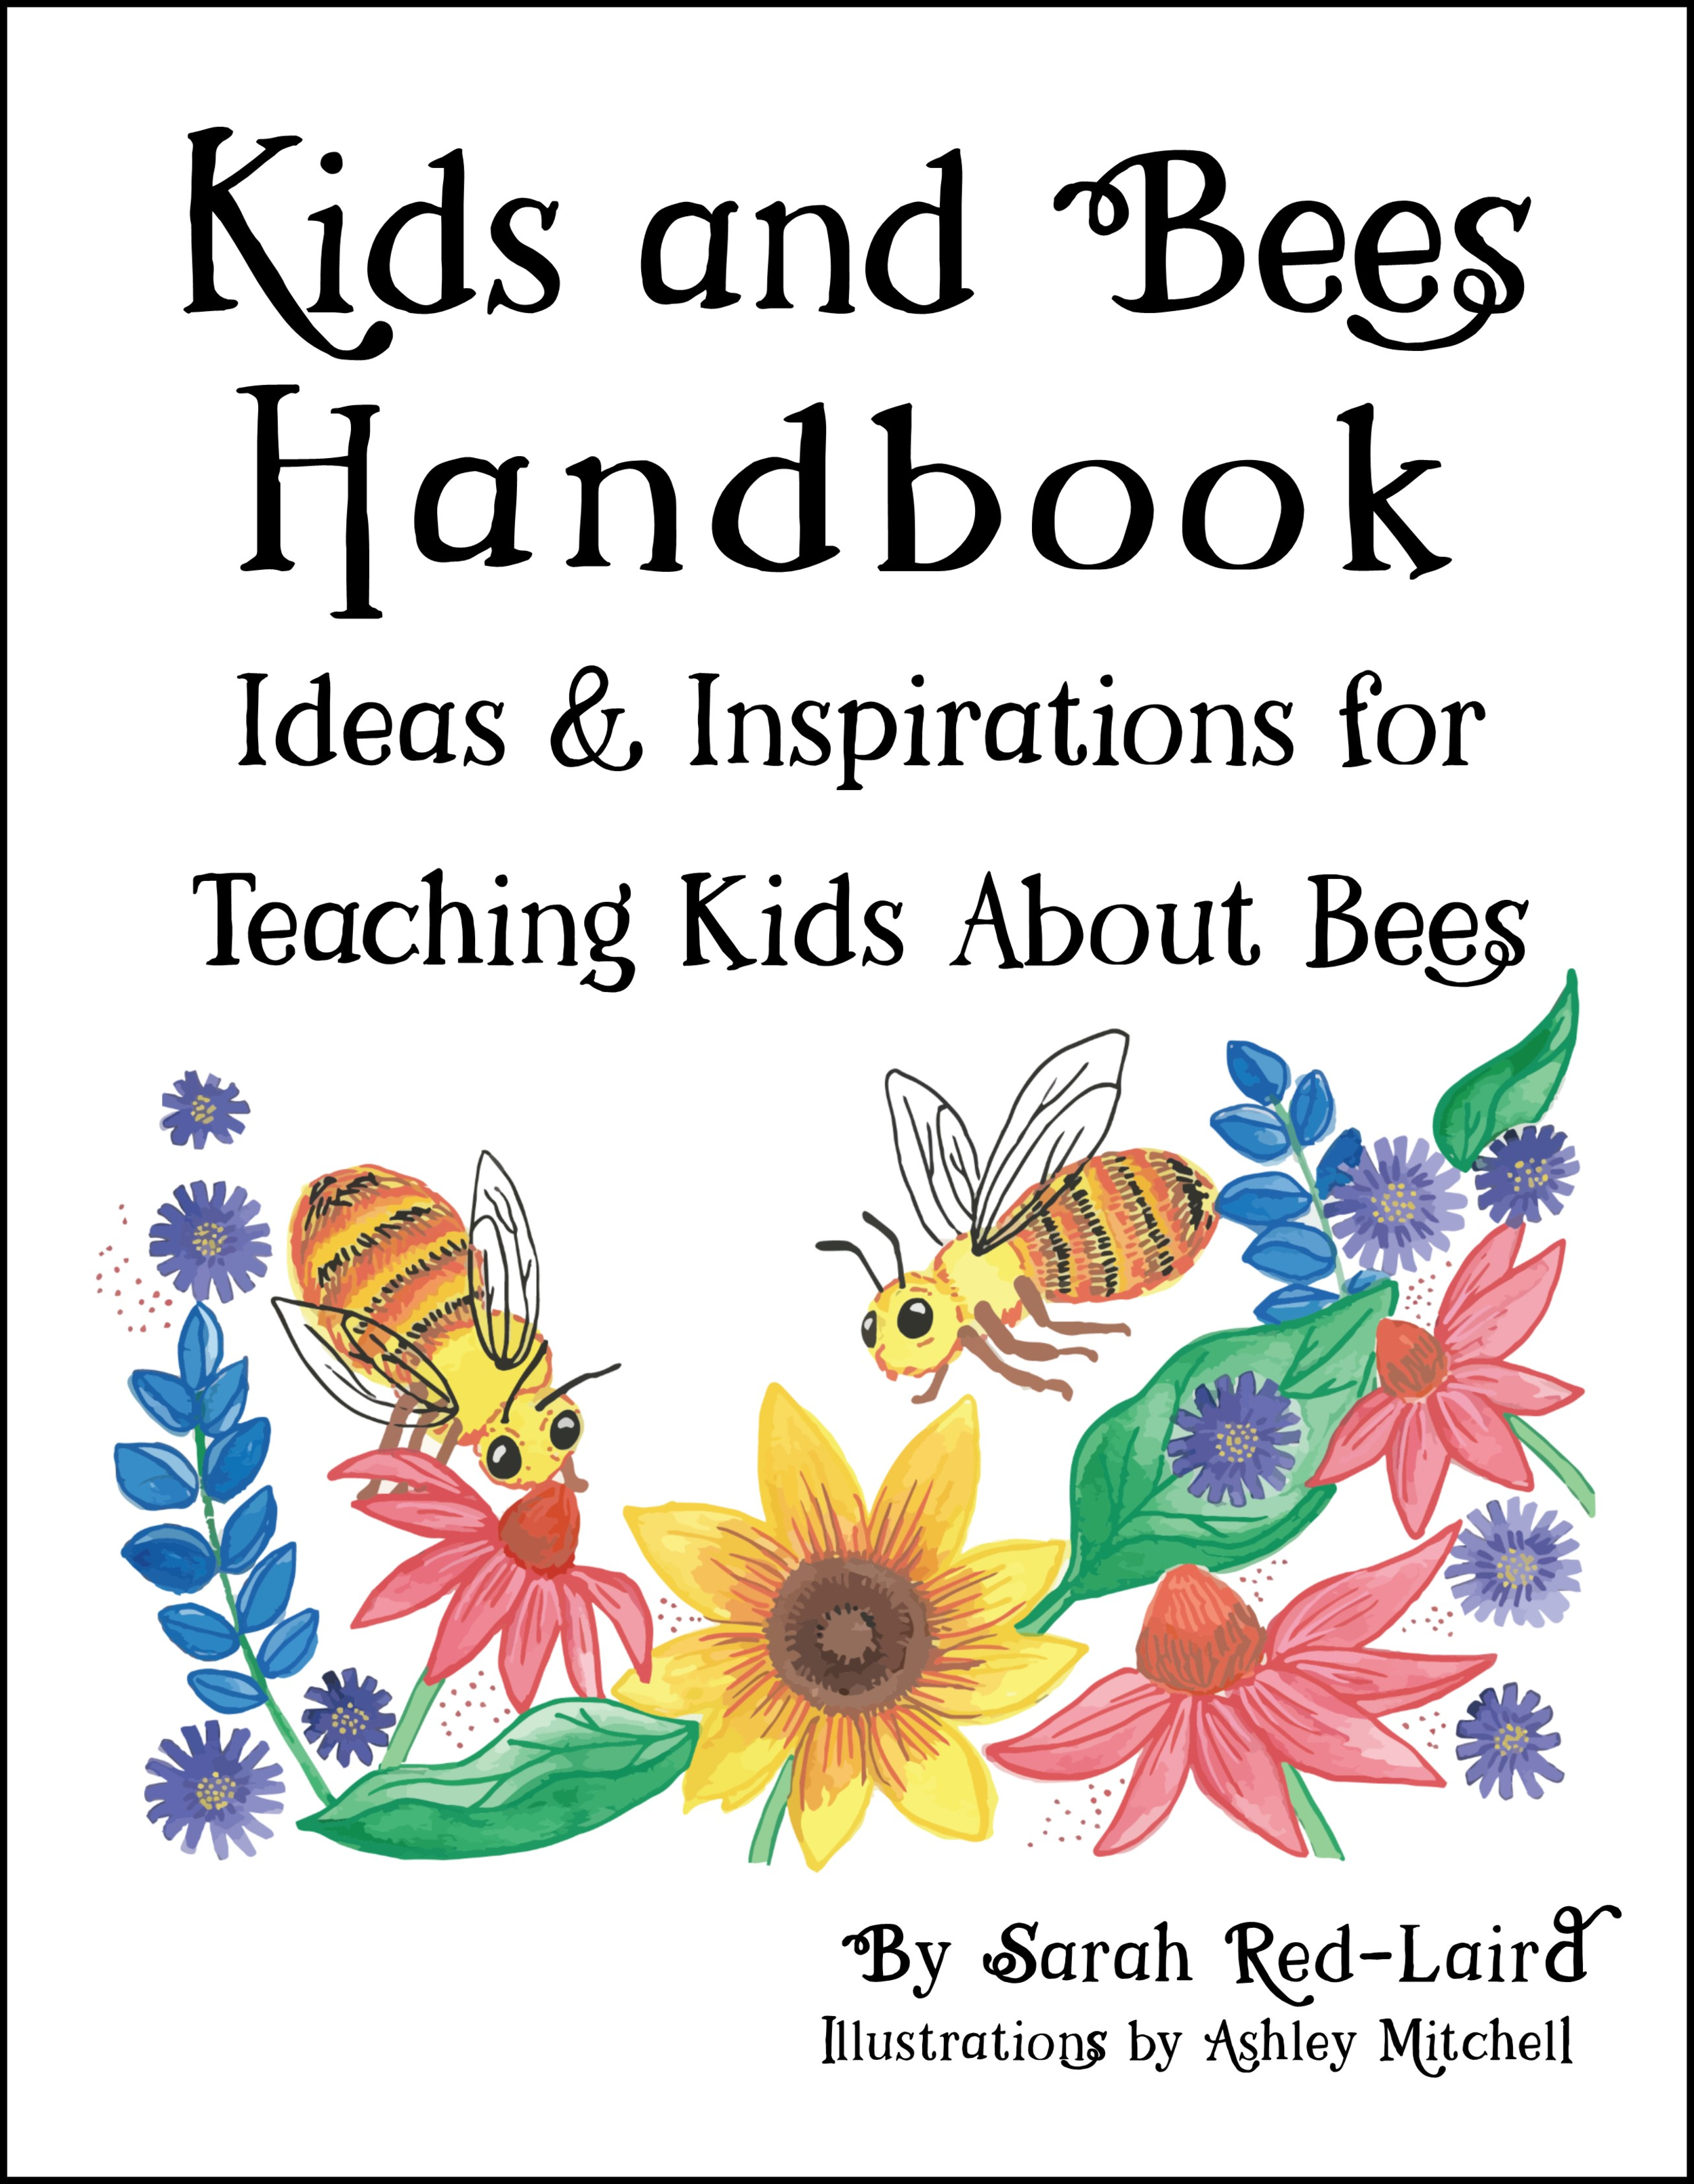 Kids and Bees Handbook Cover Border.png